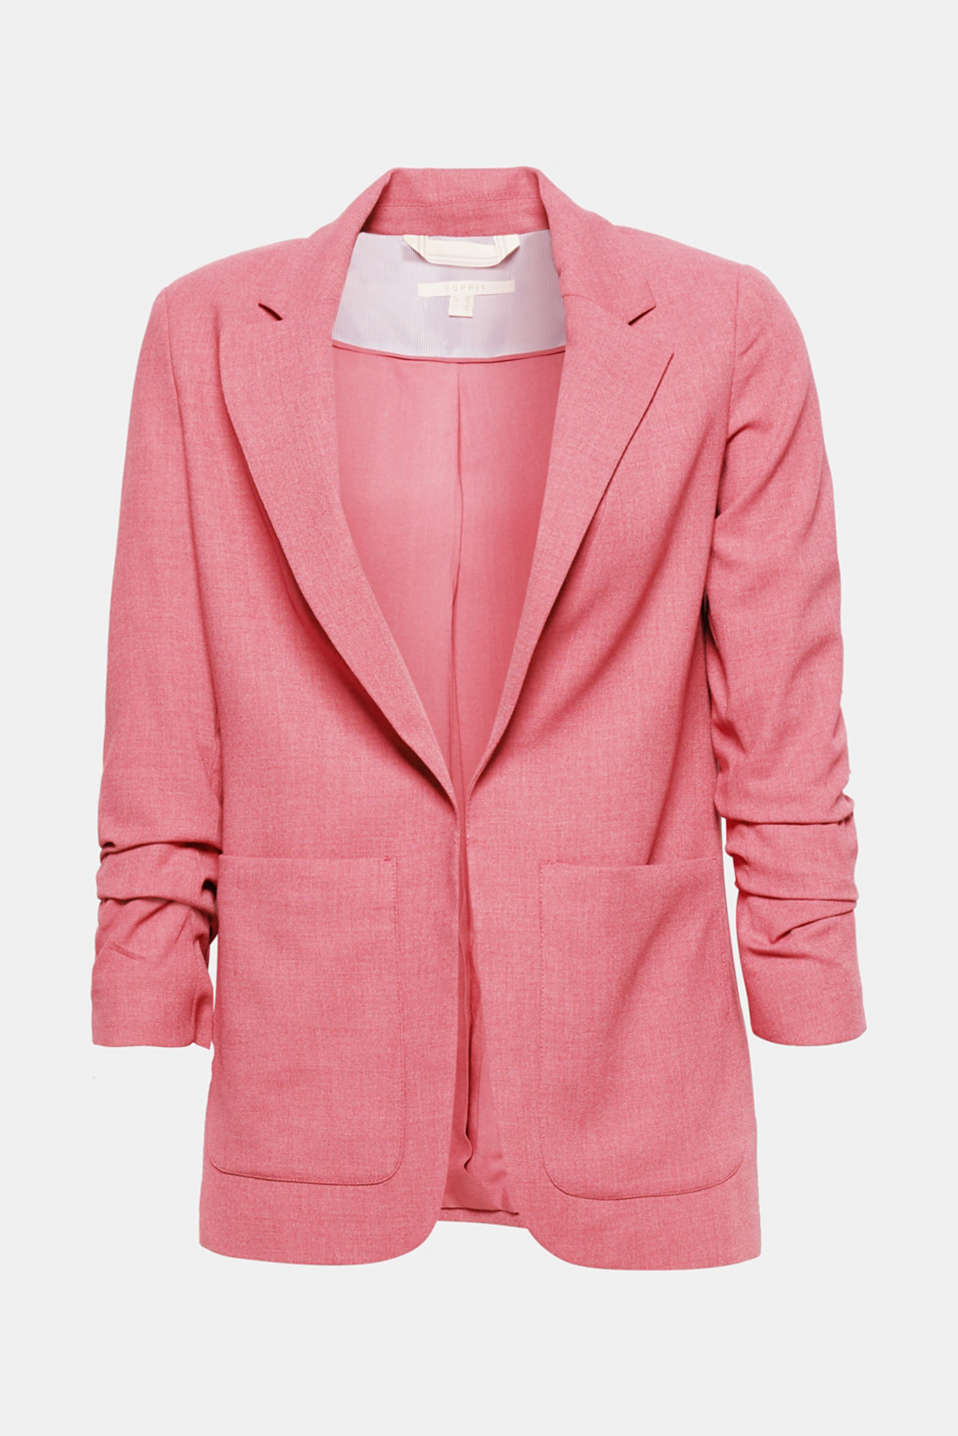 Gathered 3/4-length sleeves and a long, open-fronted silhouette make this melange stretch blazer a fashion piece.